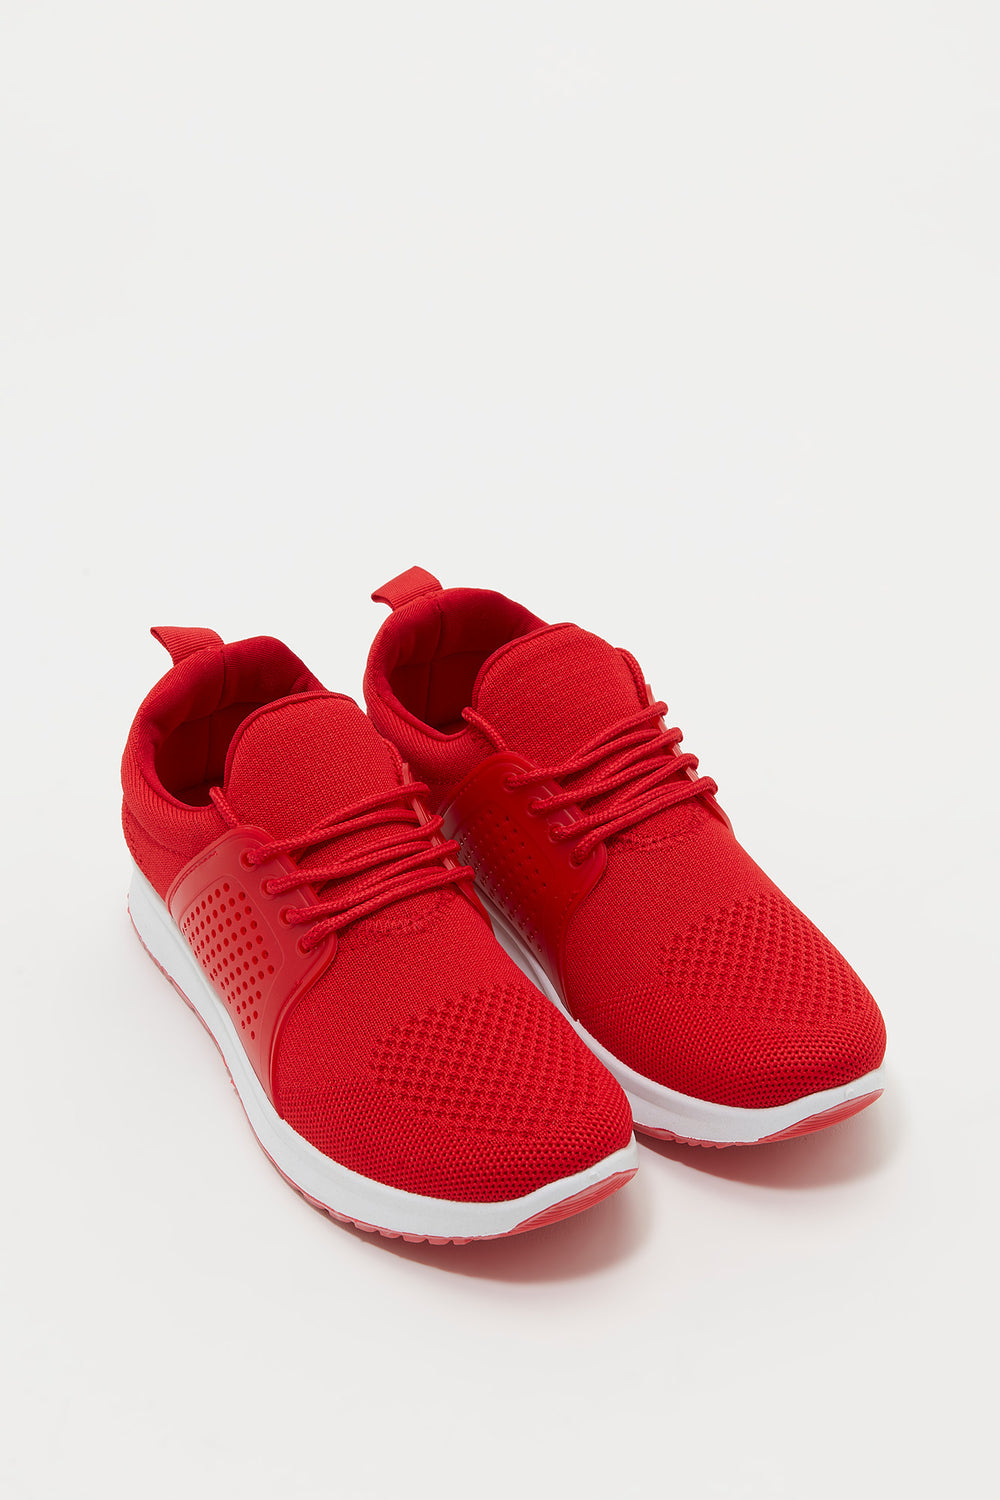 Knit Lace-Up Foam Insole Sneaker Red